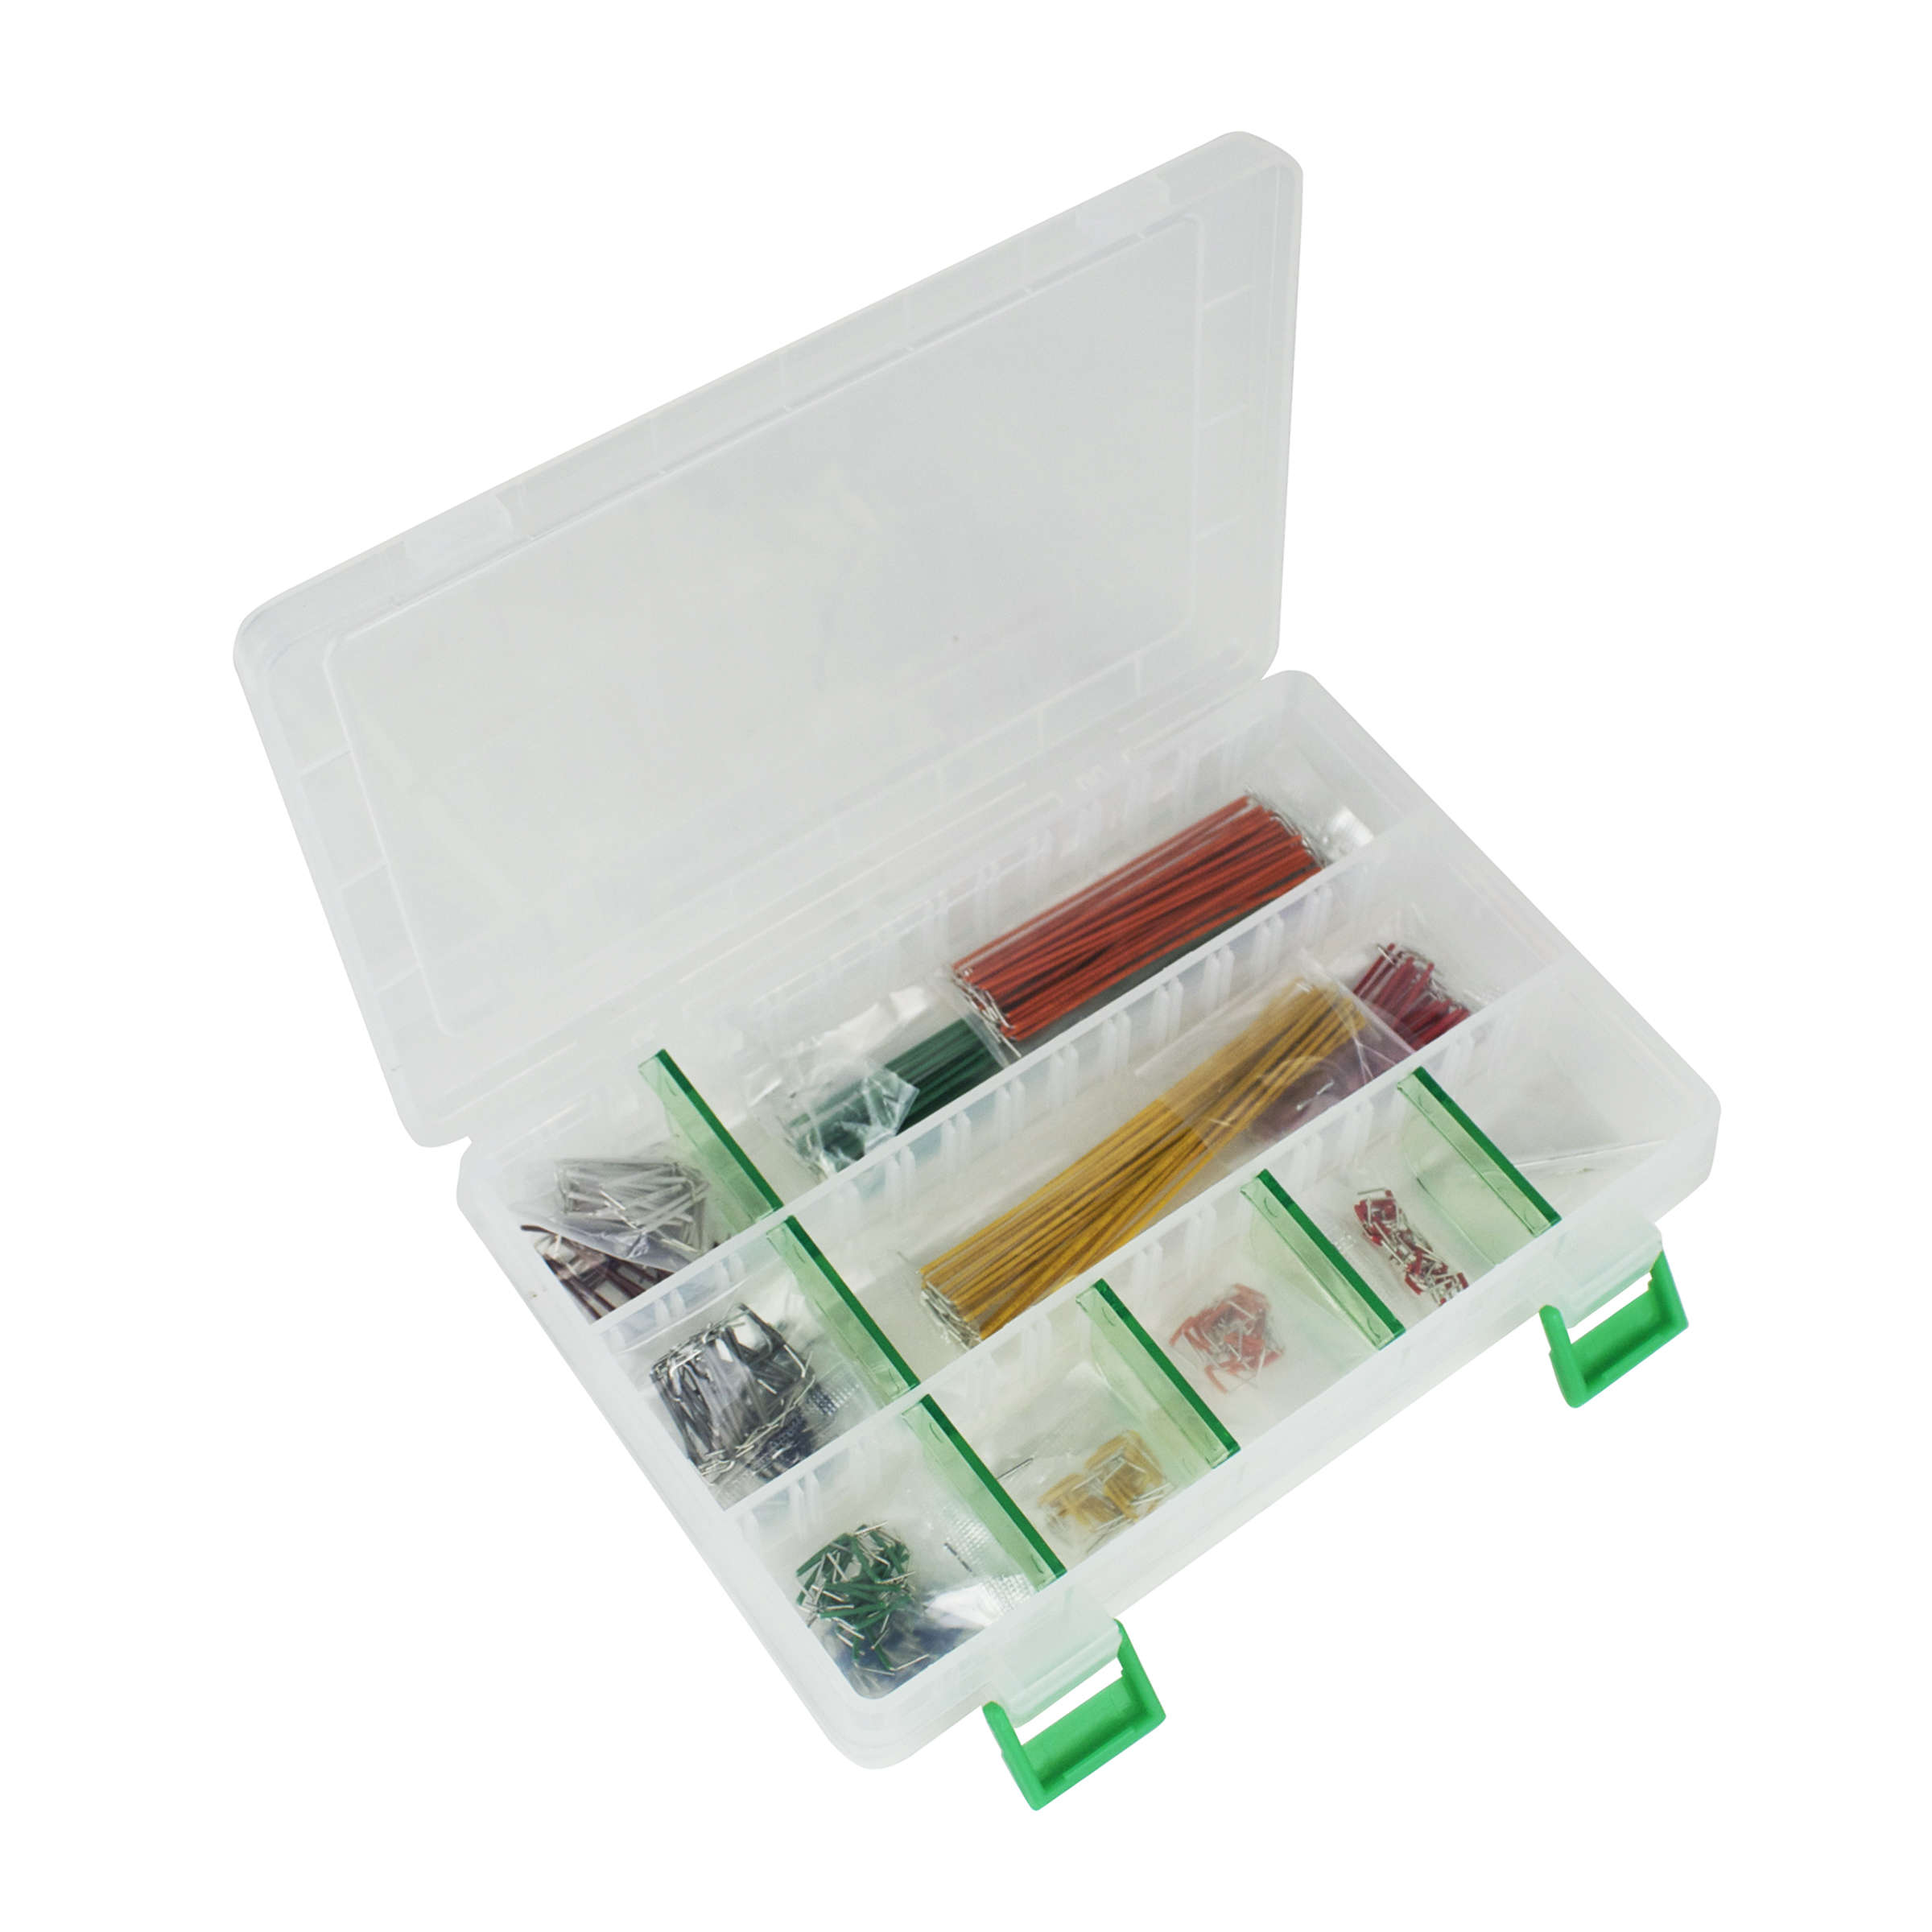 Global Specialties WK-1 Jumper Wire Kit, 350 Pcs Photo